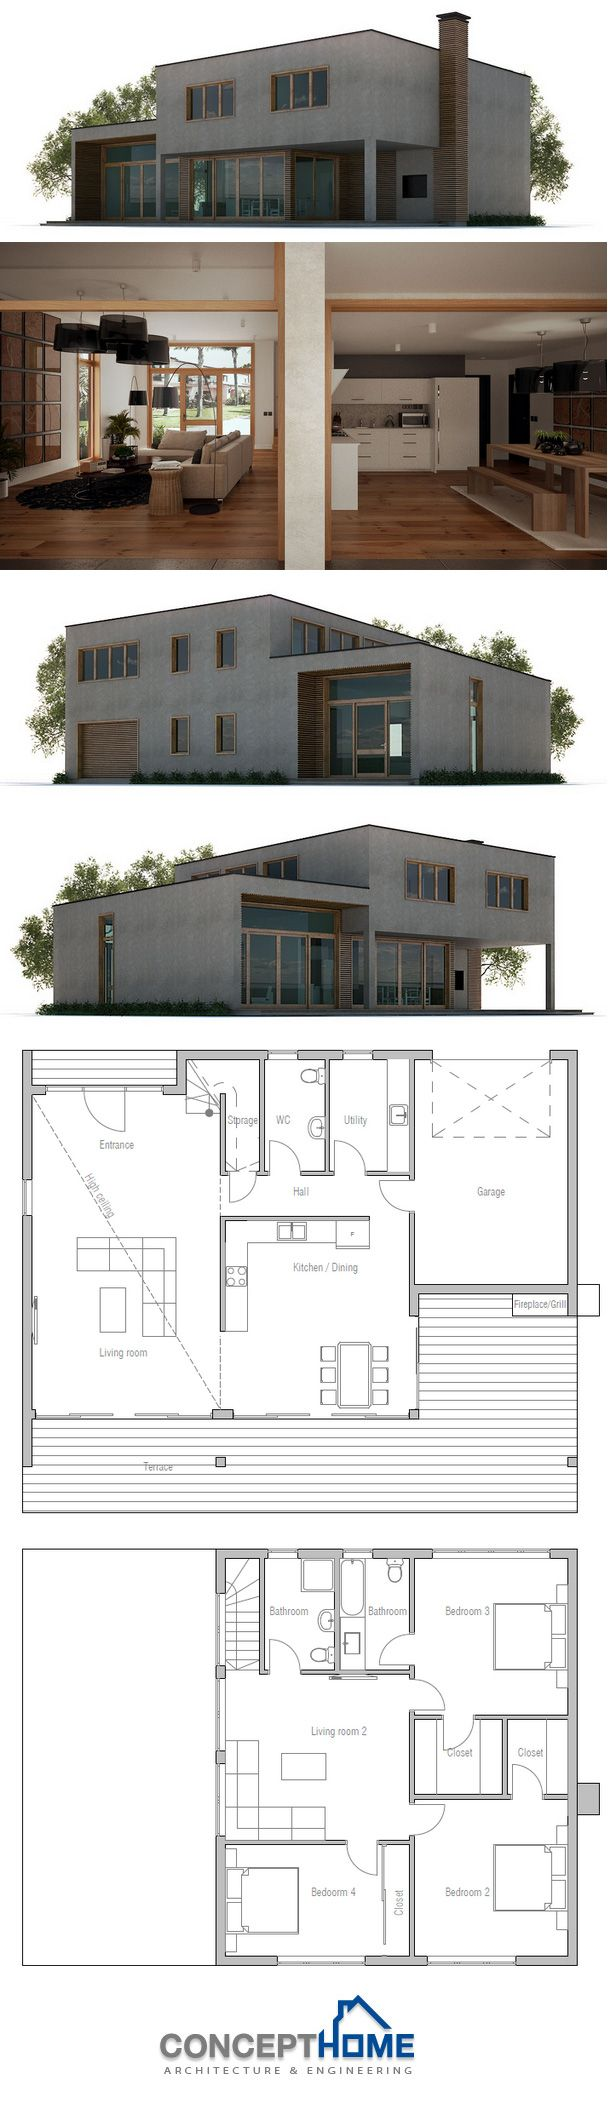 31 best Two family house plans images